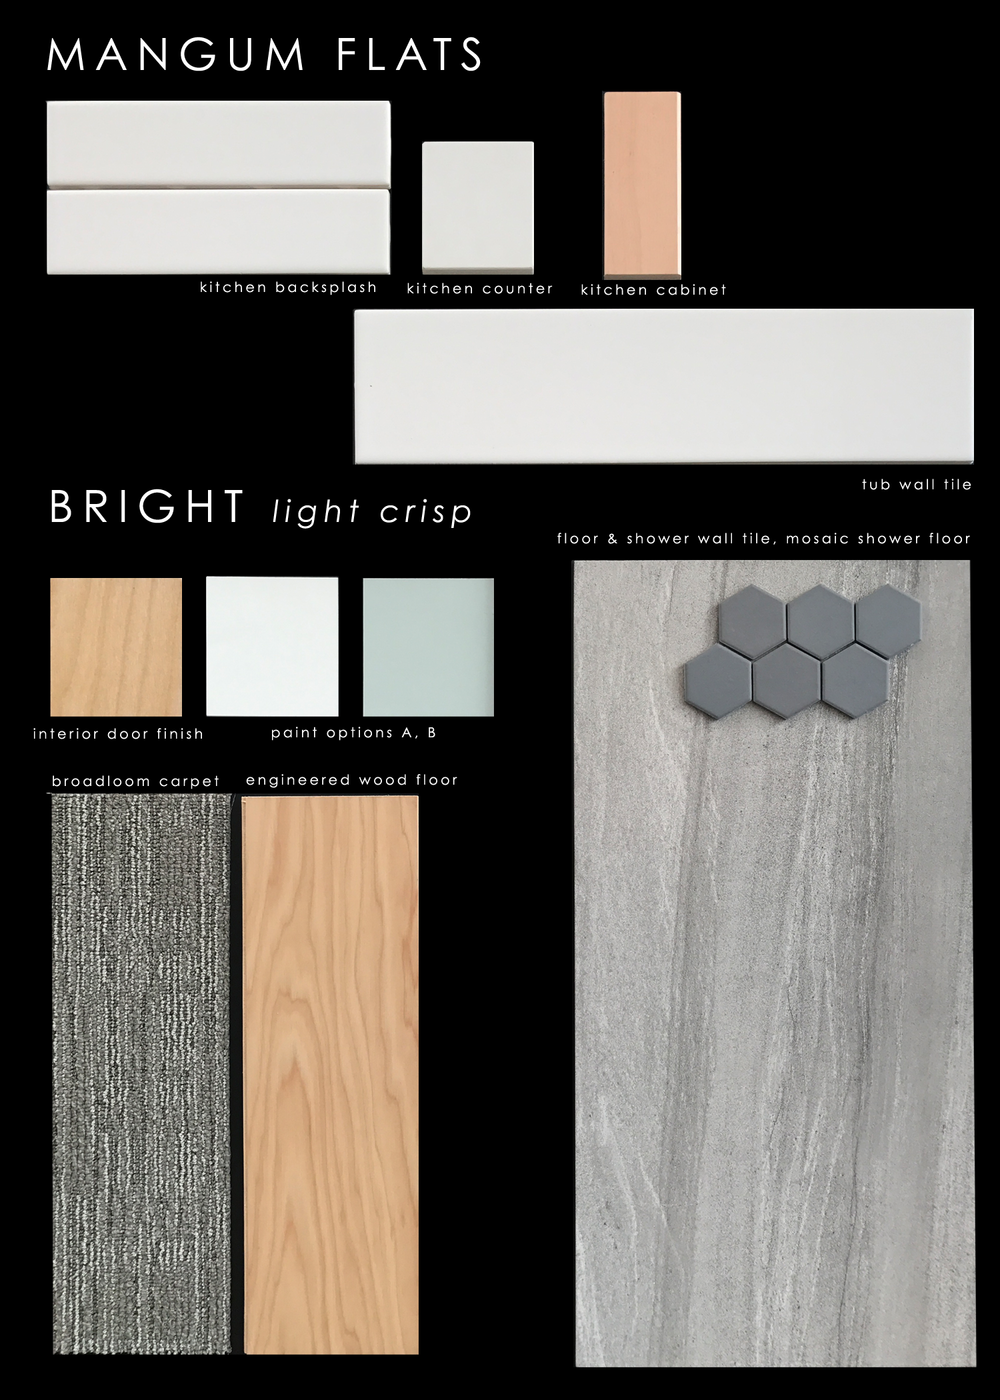 Finish Package: Bright light crisp